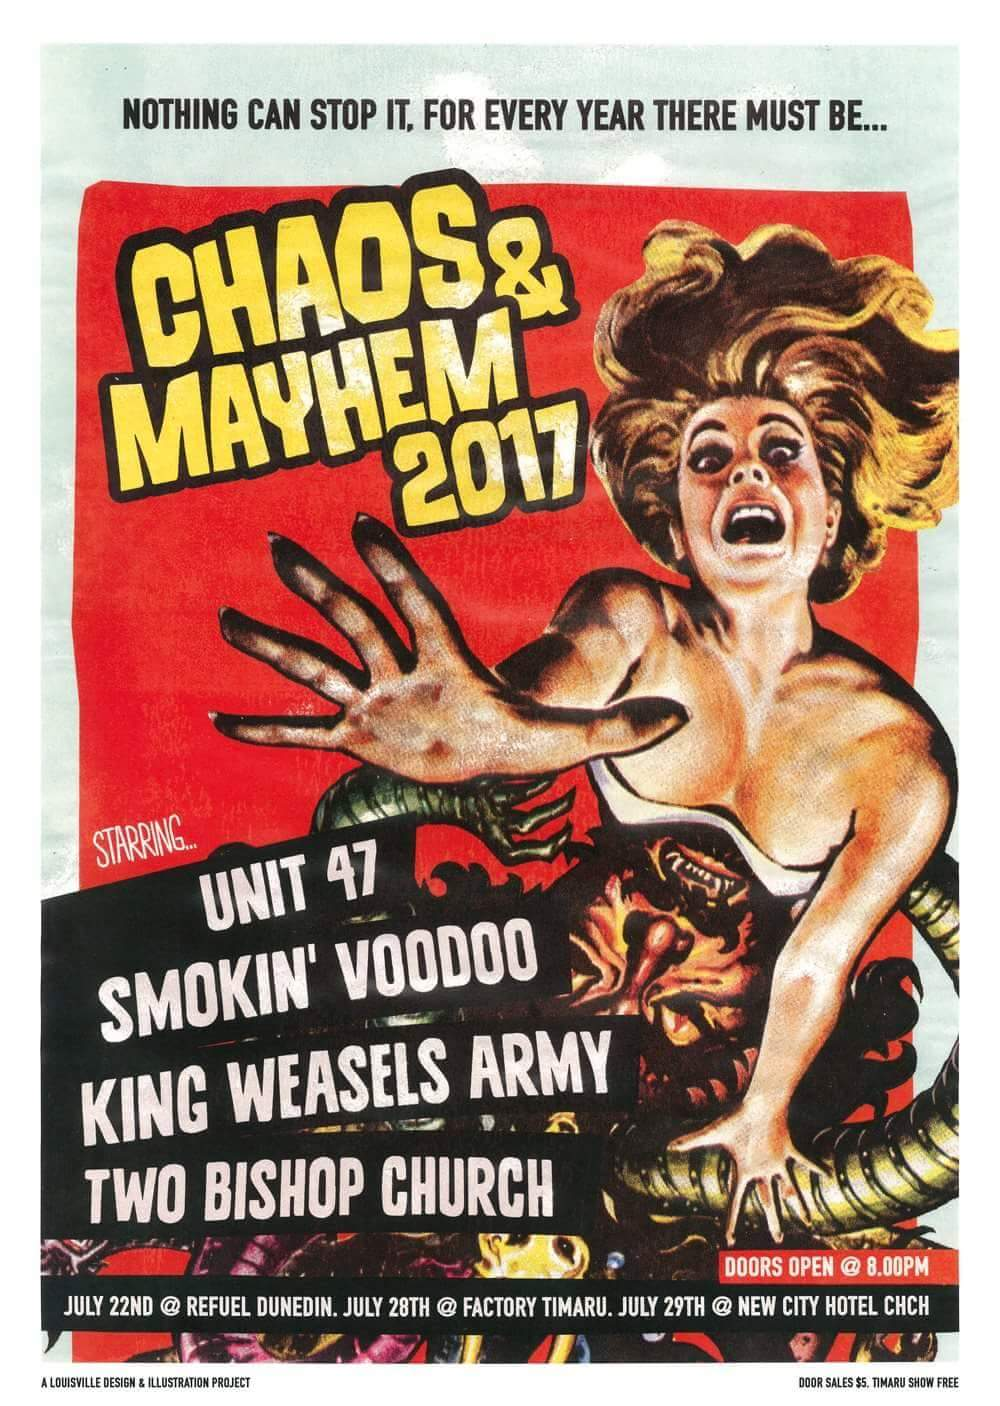 Unit 47 Smokin' Voodoo Choas And Mayhem Tour